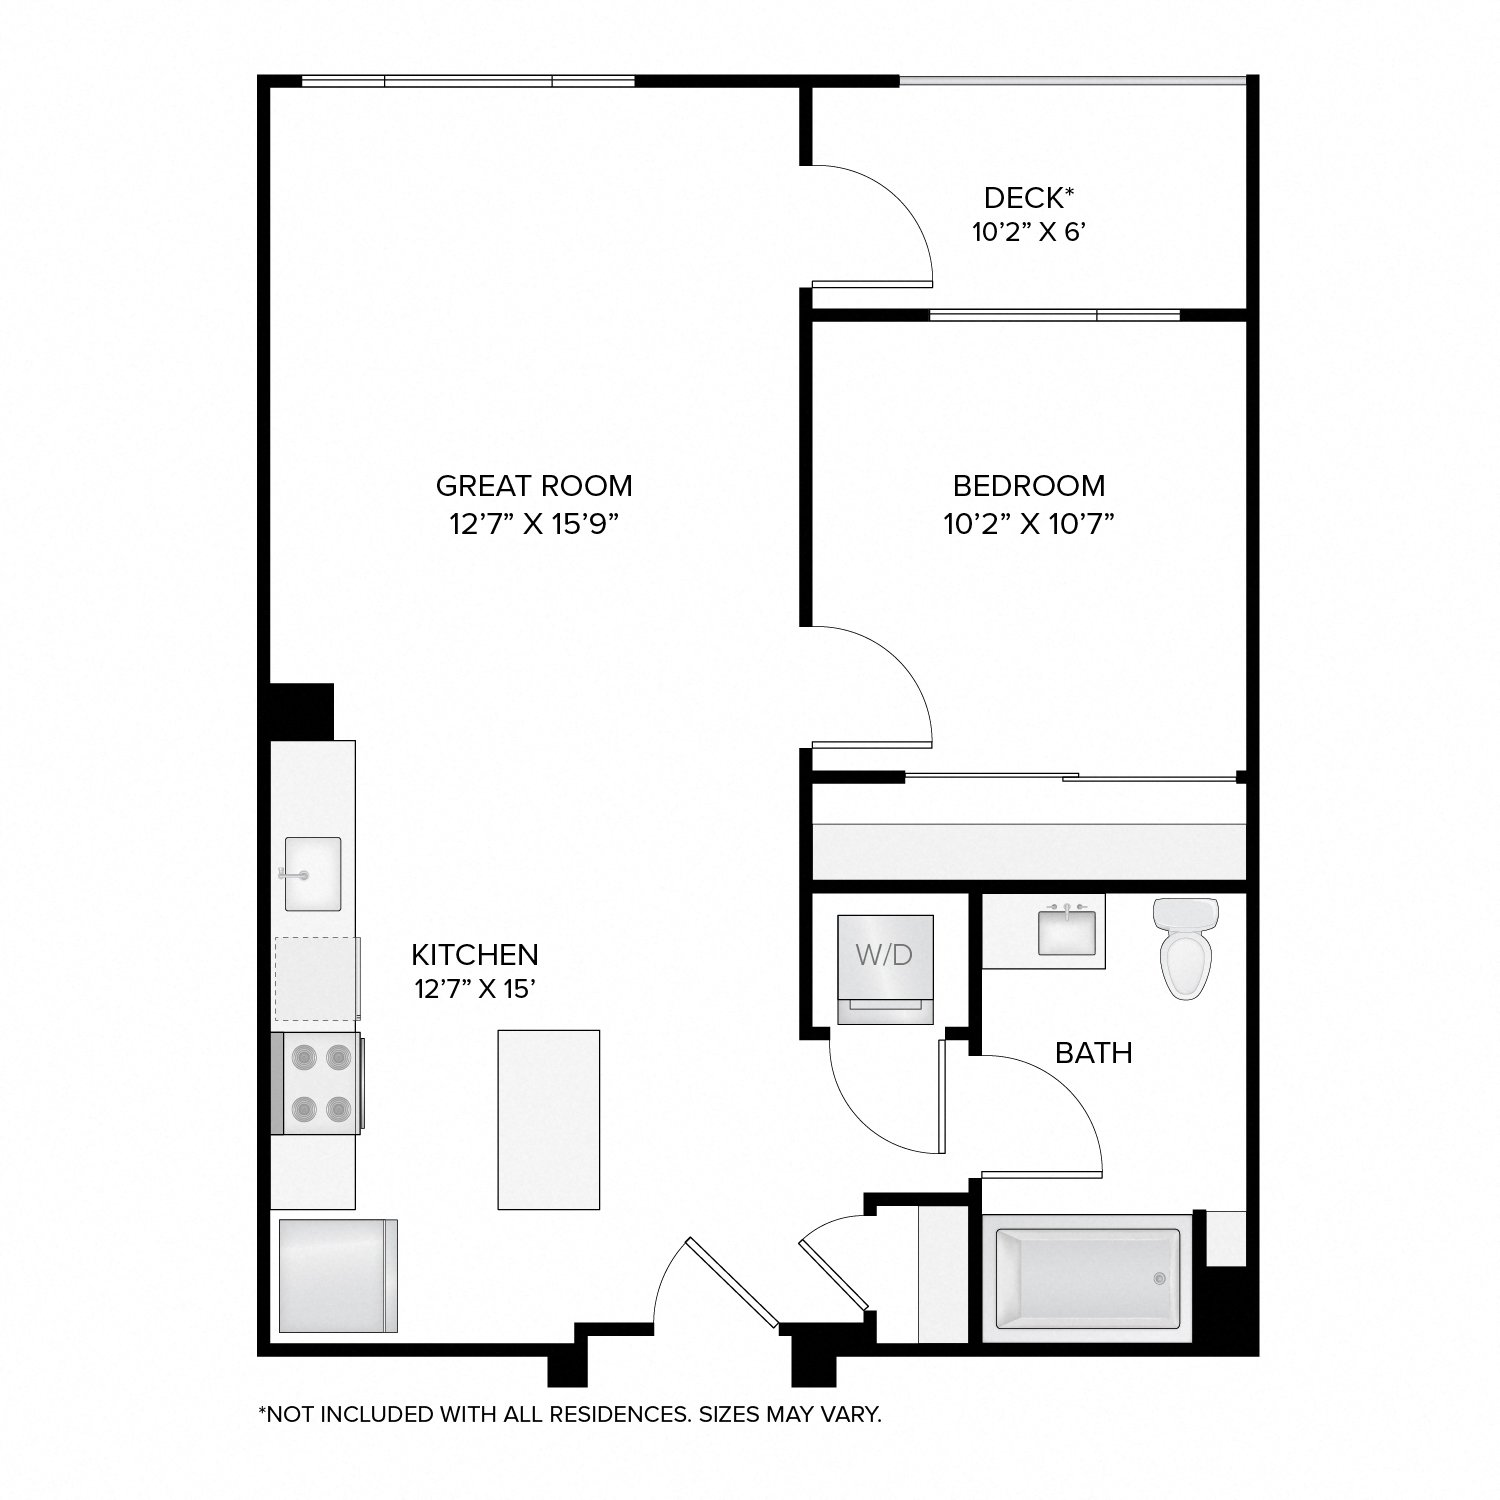 Diagram of the Franklin floor plan. One bedroom, one bathroom, an open kitchen and living area, a washer dryer, and in select residences, a deck.